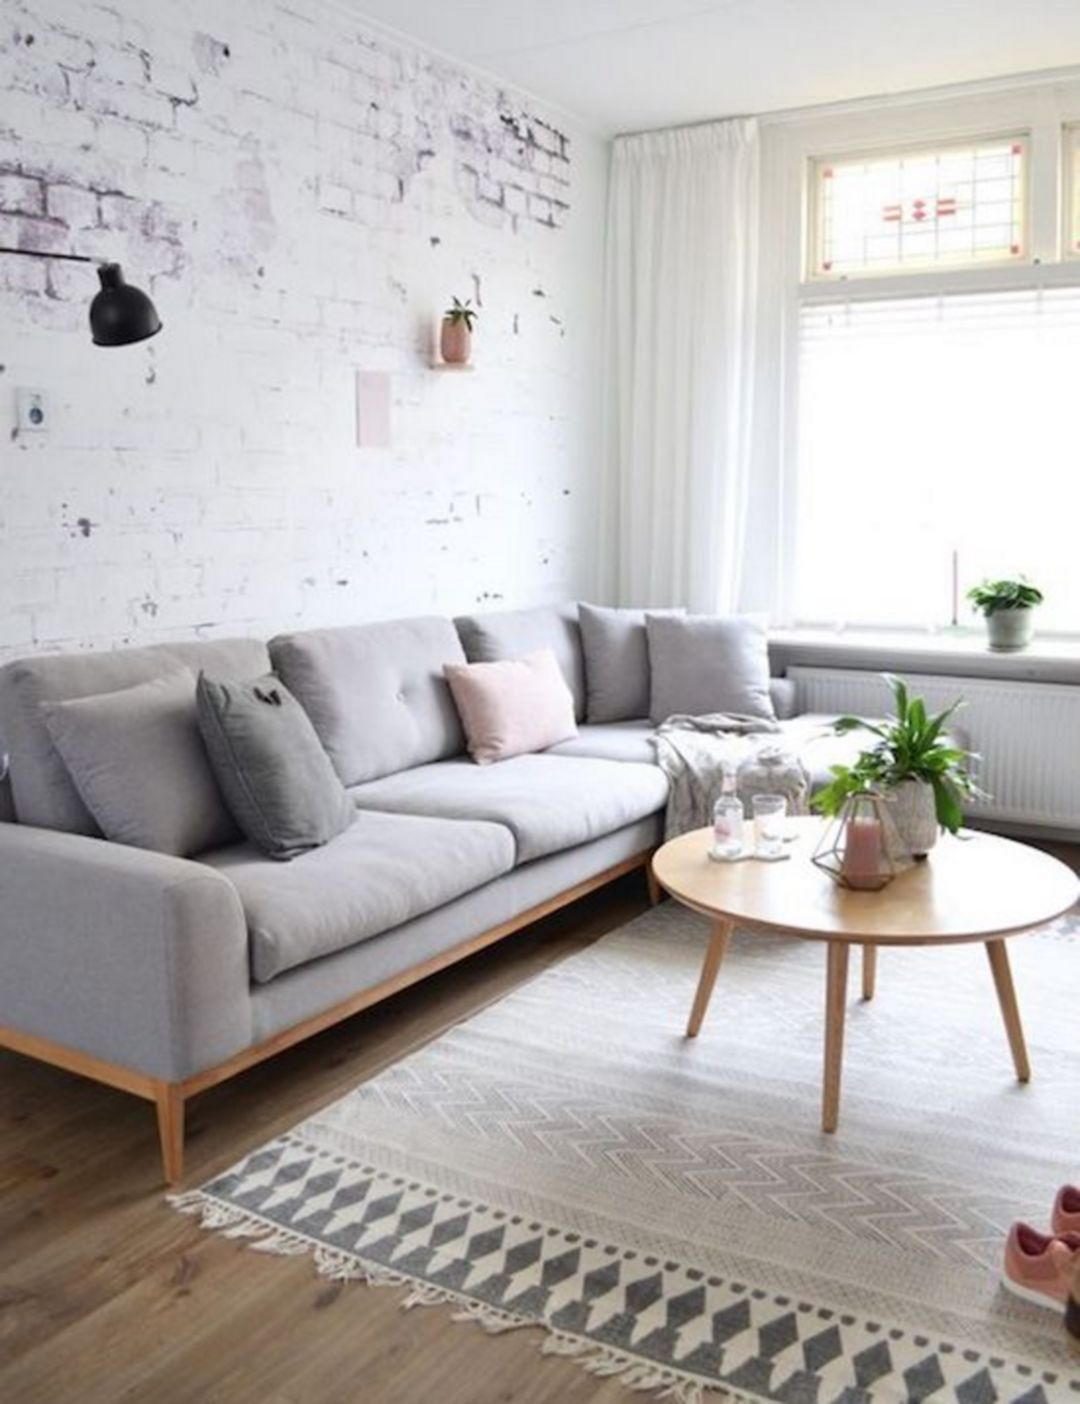 52 Beautiful Minimalist Home Decor On A Budget Living Room